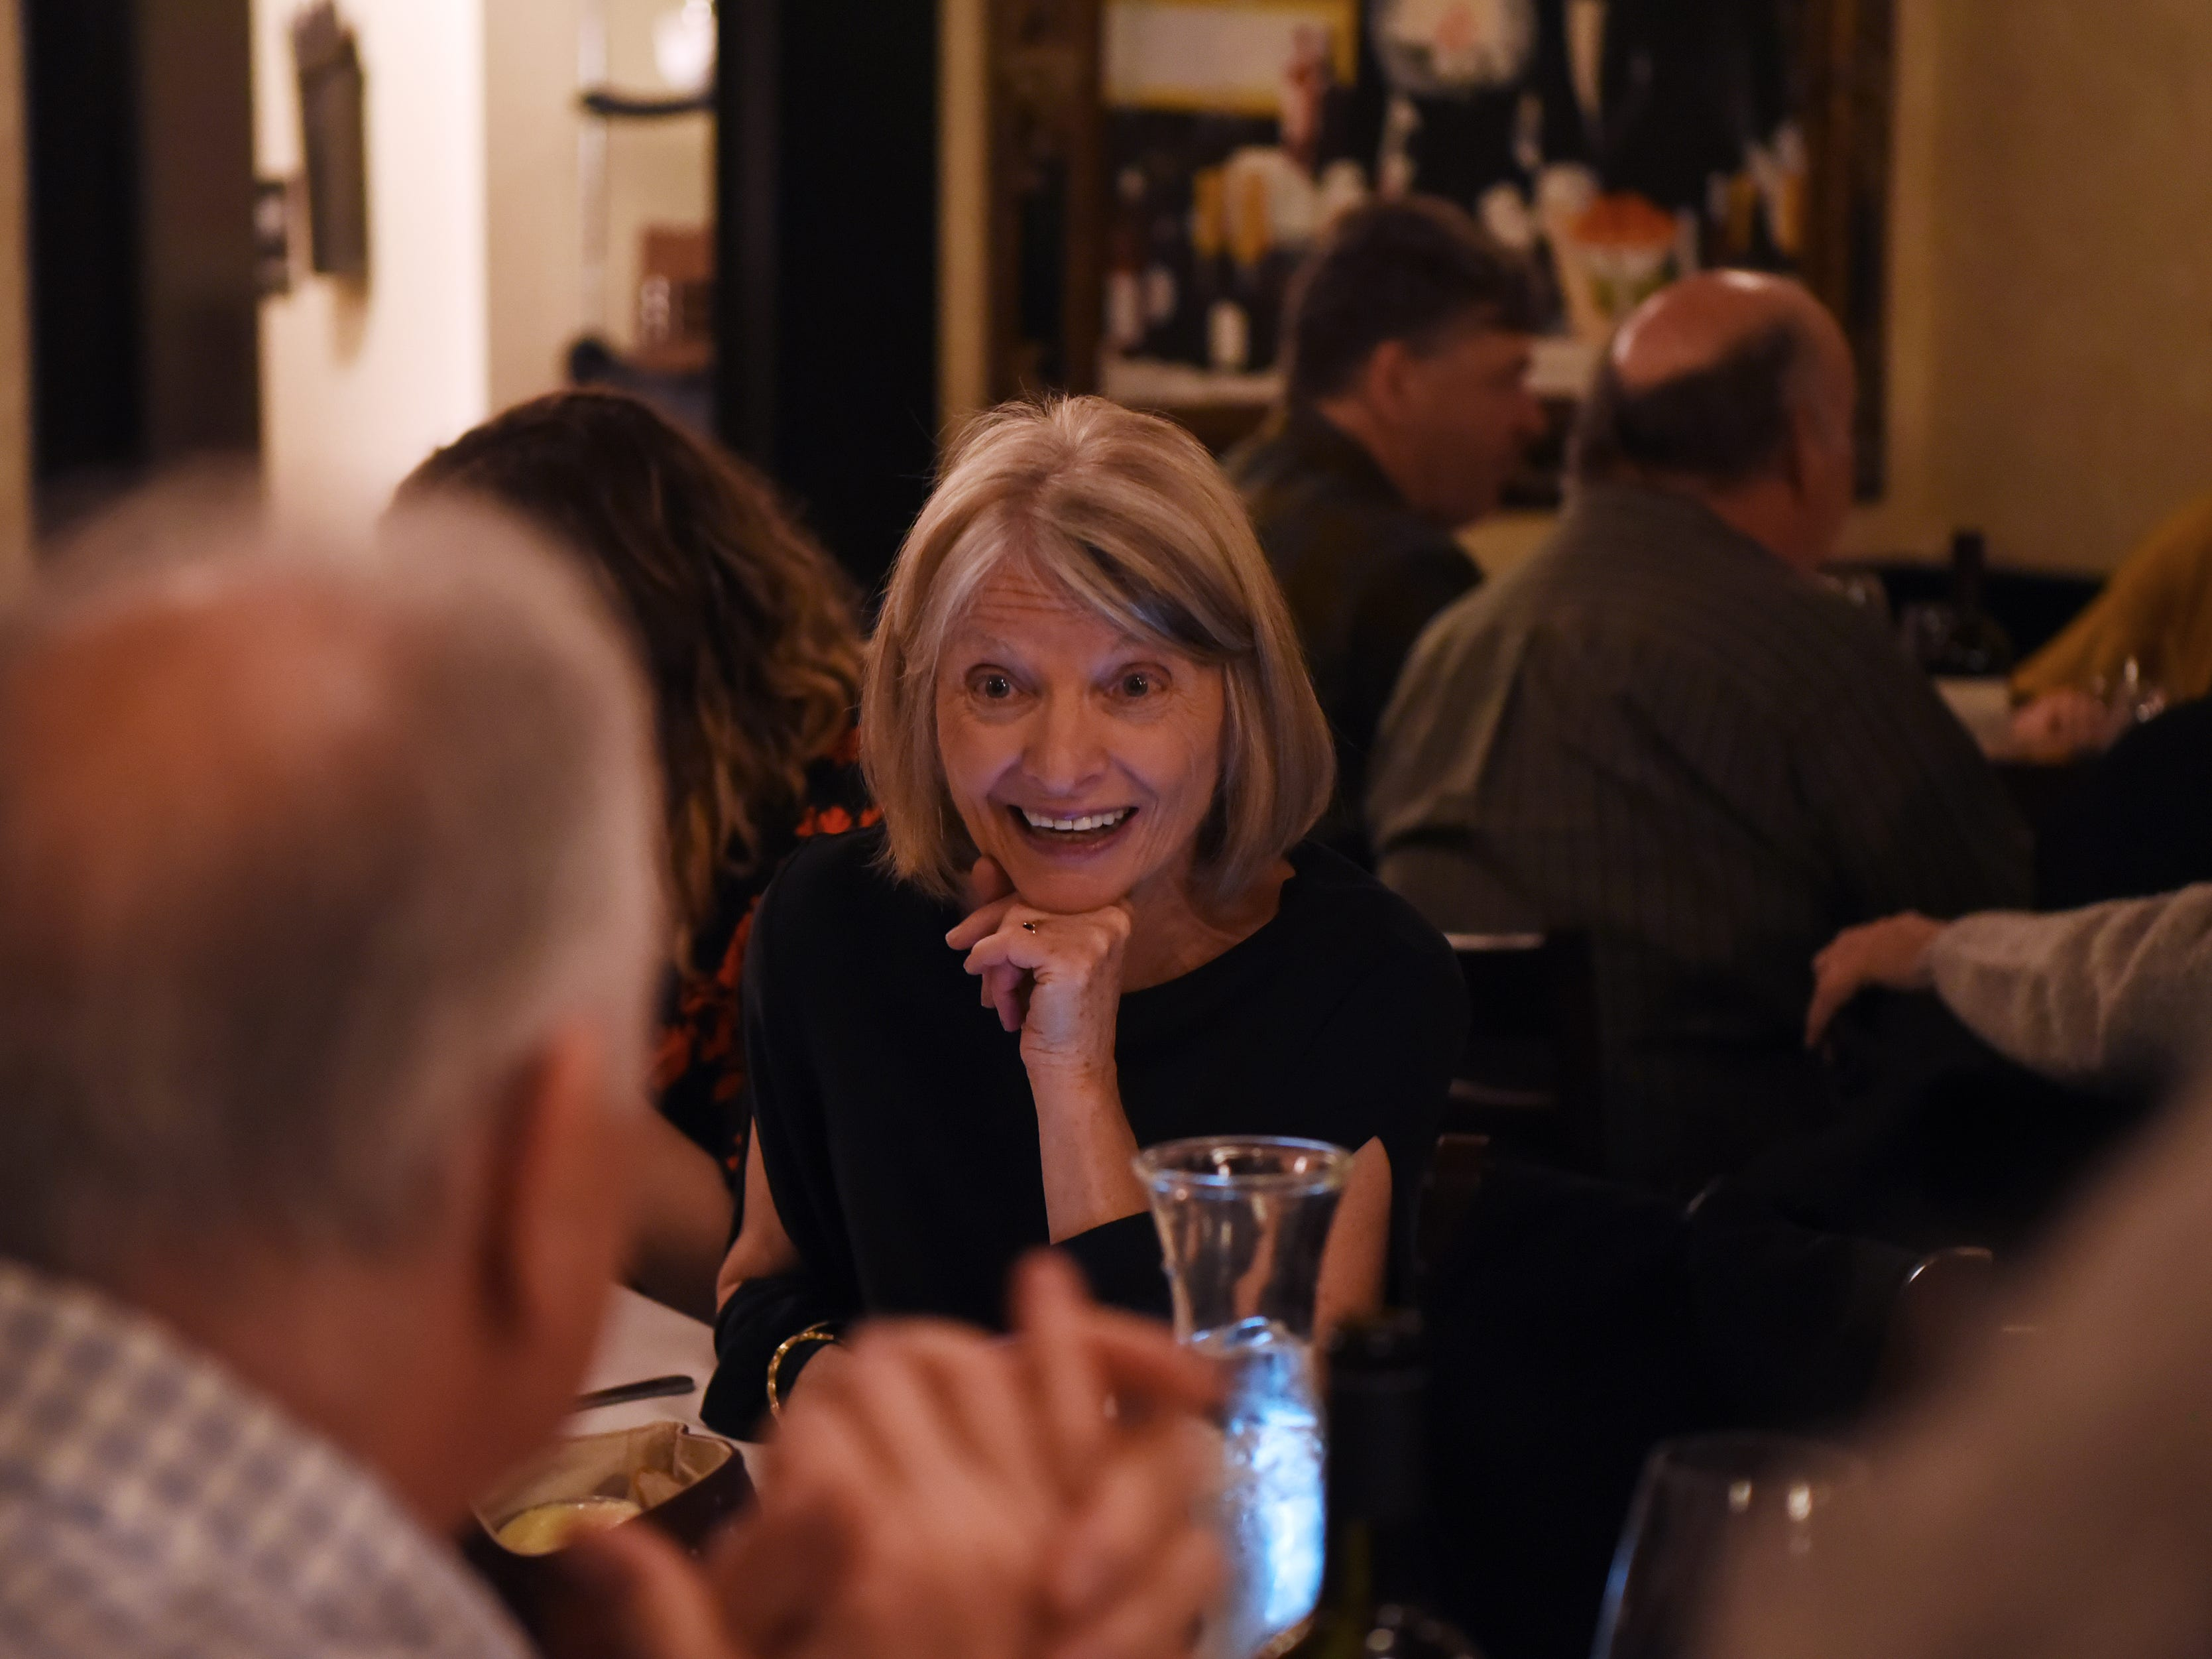 The dinner with Esther event at Technique, a French restaurant in Westwood on Thursday February 7, 2019.